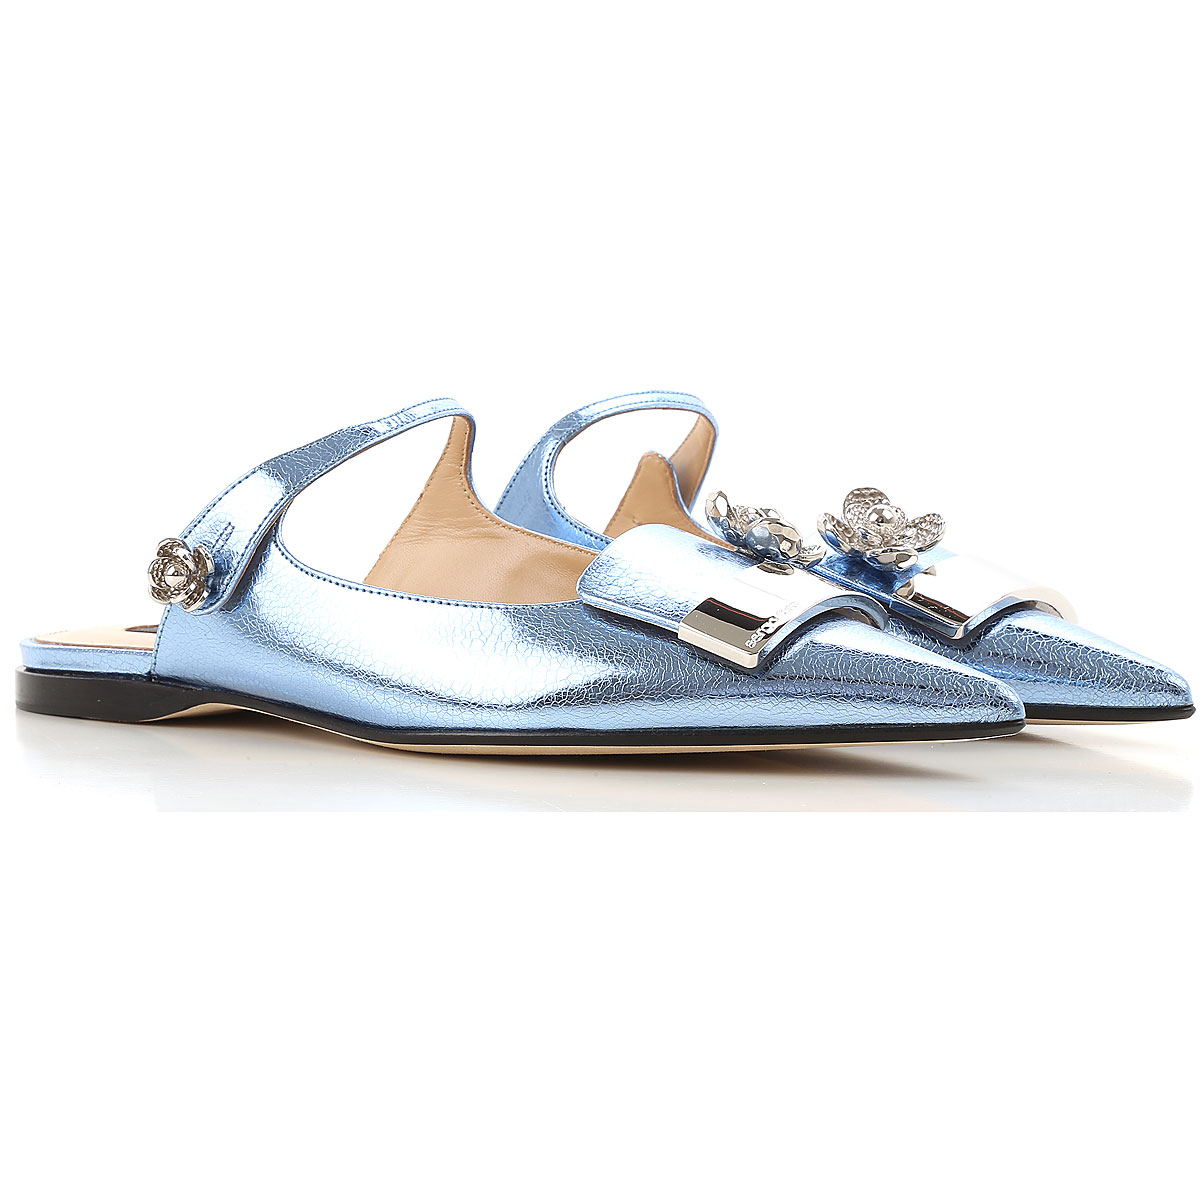 Image of Sergio Rossi Ballet Flats Ballerina Shoes for Women On Sale, Laguna Blue, Patent Leather, 2017, 7 8.5